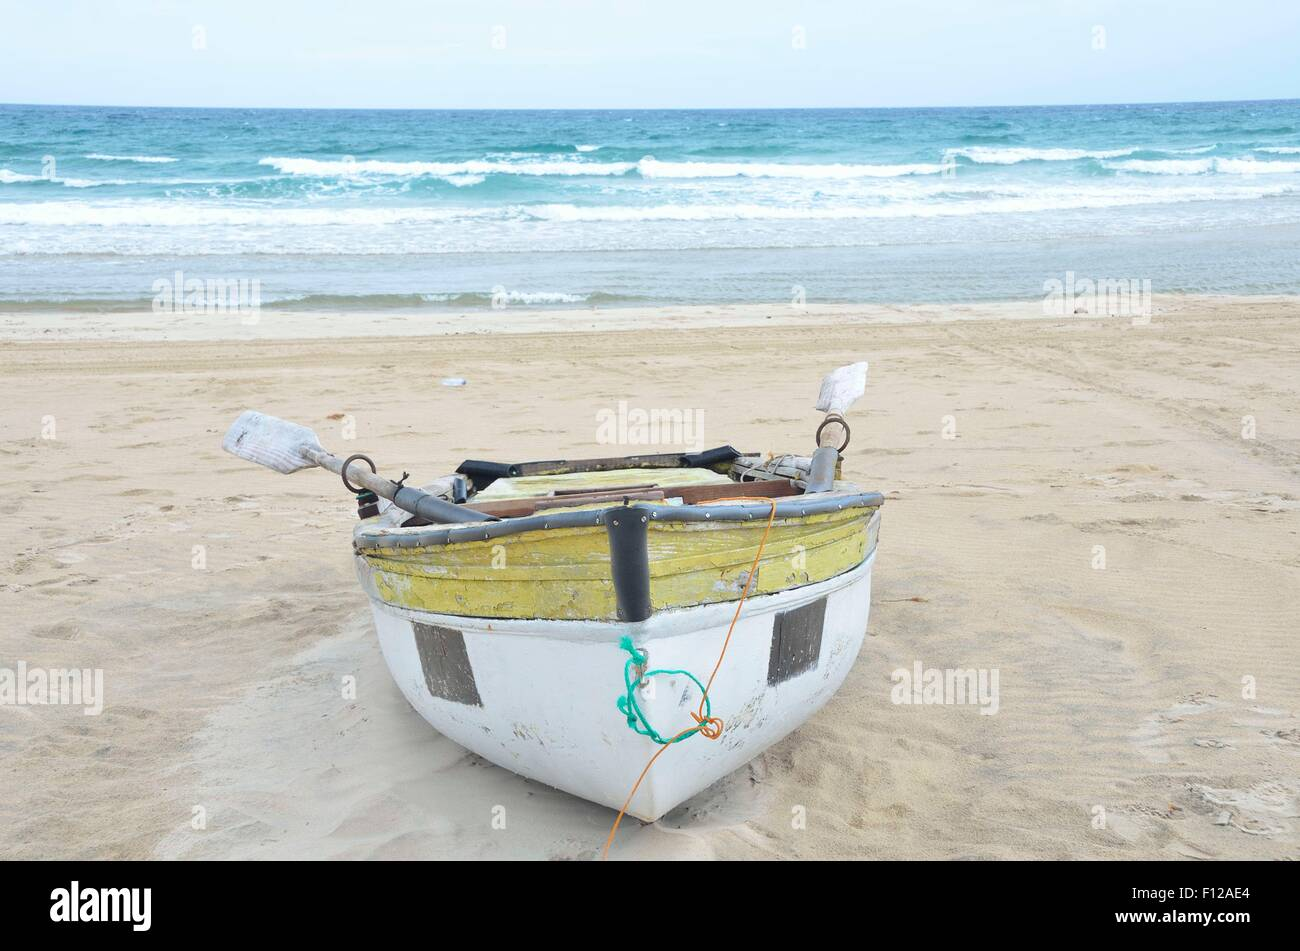 This old, unsafe fishing boat lying on the beach at Inhambane, Mozambique is in daily use. - Stock Image